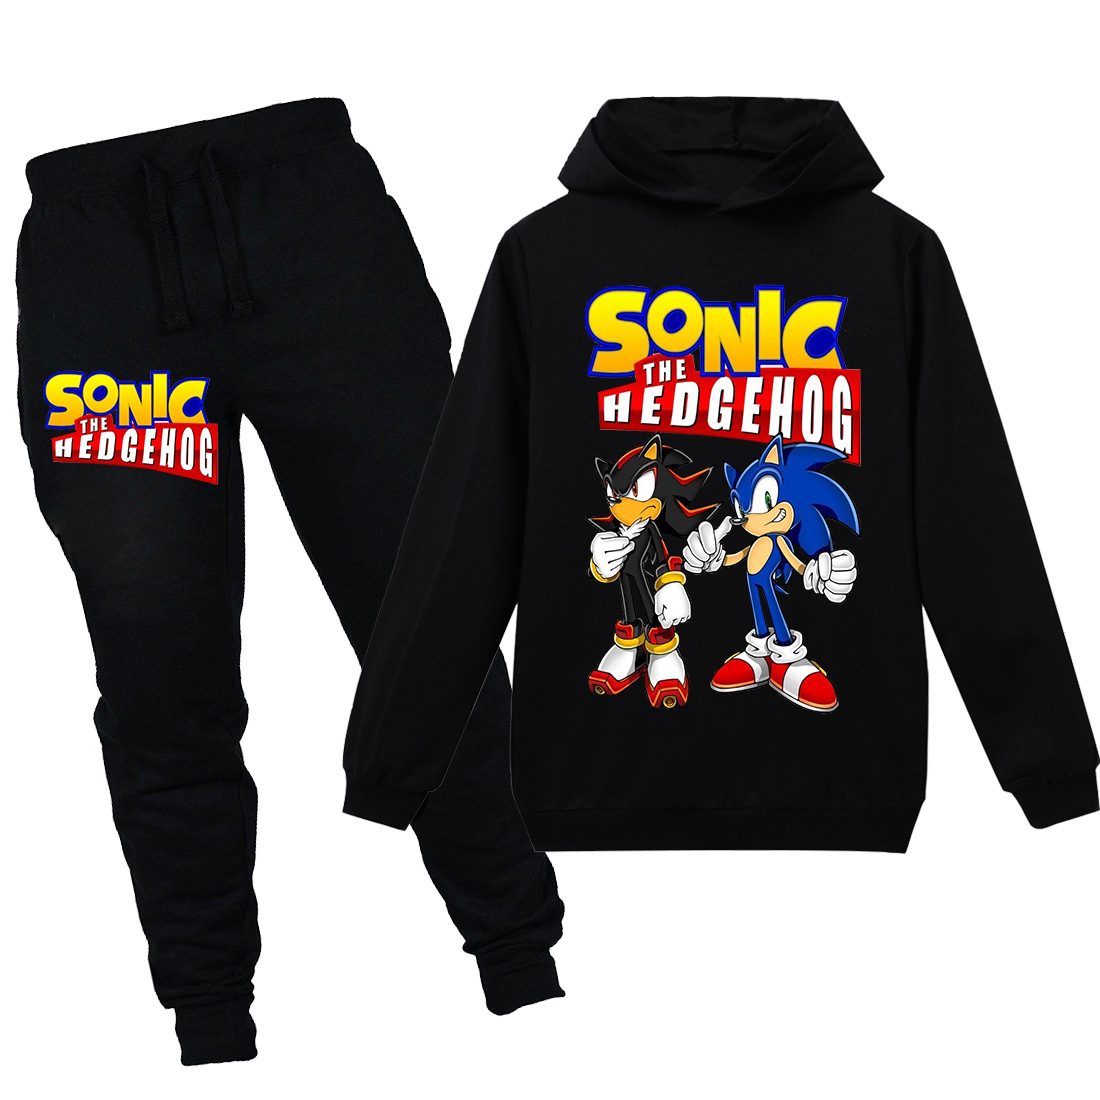 Child Tracksuit Autumn Boy Clothing Sets Children Boys Girls Sonic The Hedgehog Clothes Kids Hooded T-shirt Pants 2 Pcs Suits